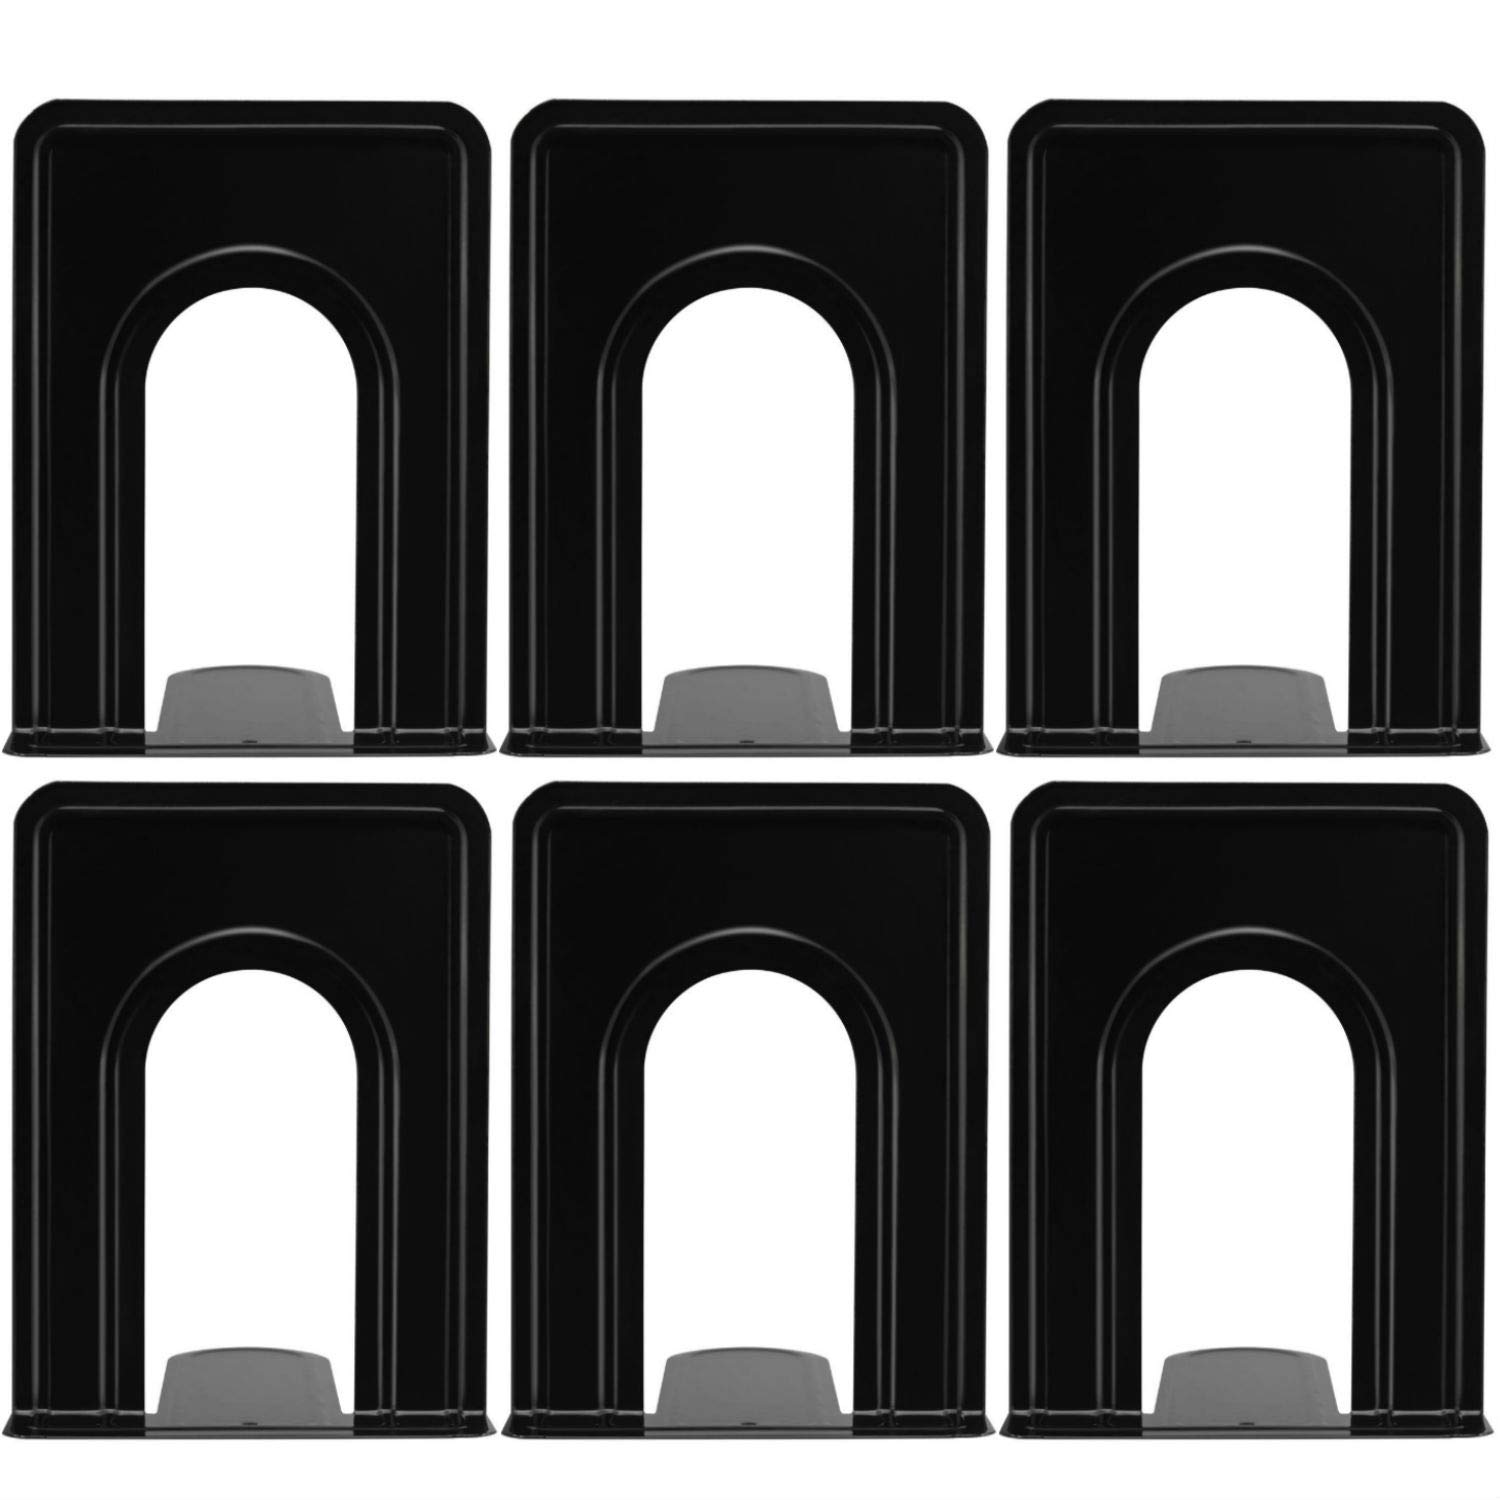 Yugge Bookend Supports Metal Book Ends Universal Economy Bookends Non-Skid Heavy Duty Book Ends Pack for Shelves Library Kitchen Home Classroom School Office, 6.69 x 4.9 x 4.3in, 3 Pair/6 Piece, Black by Yugge